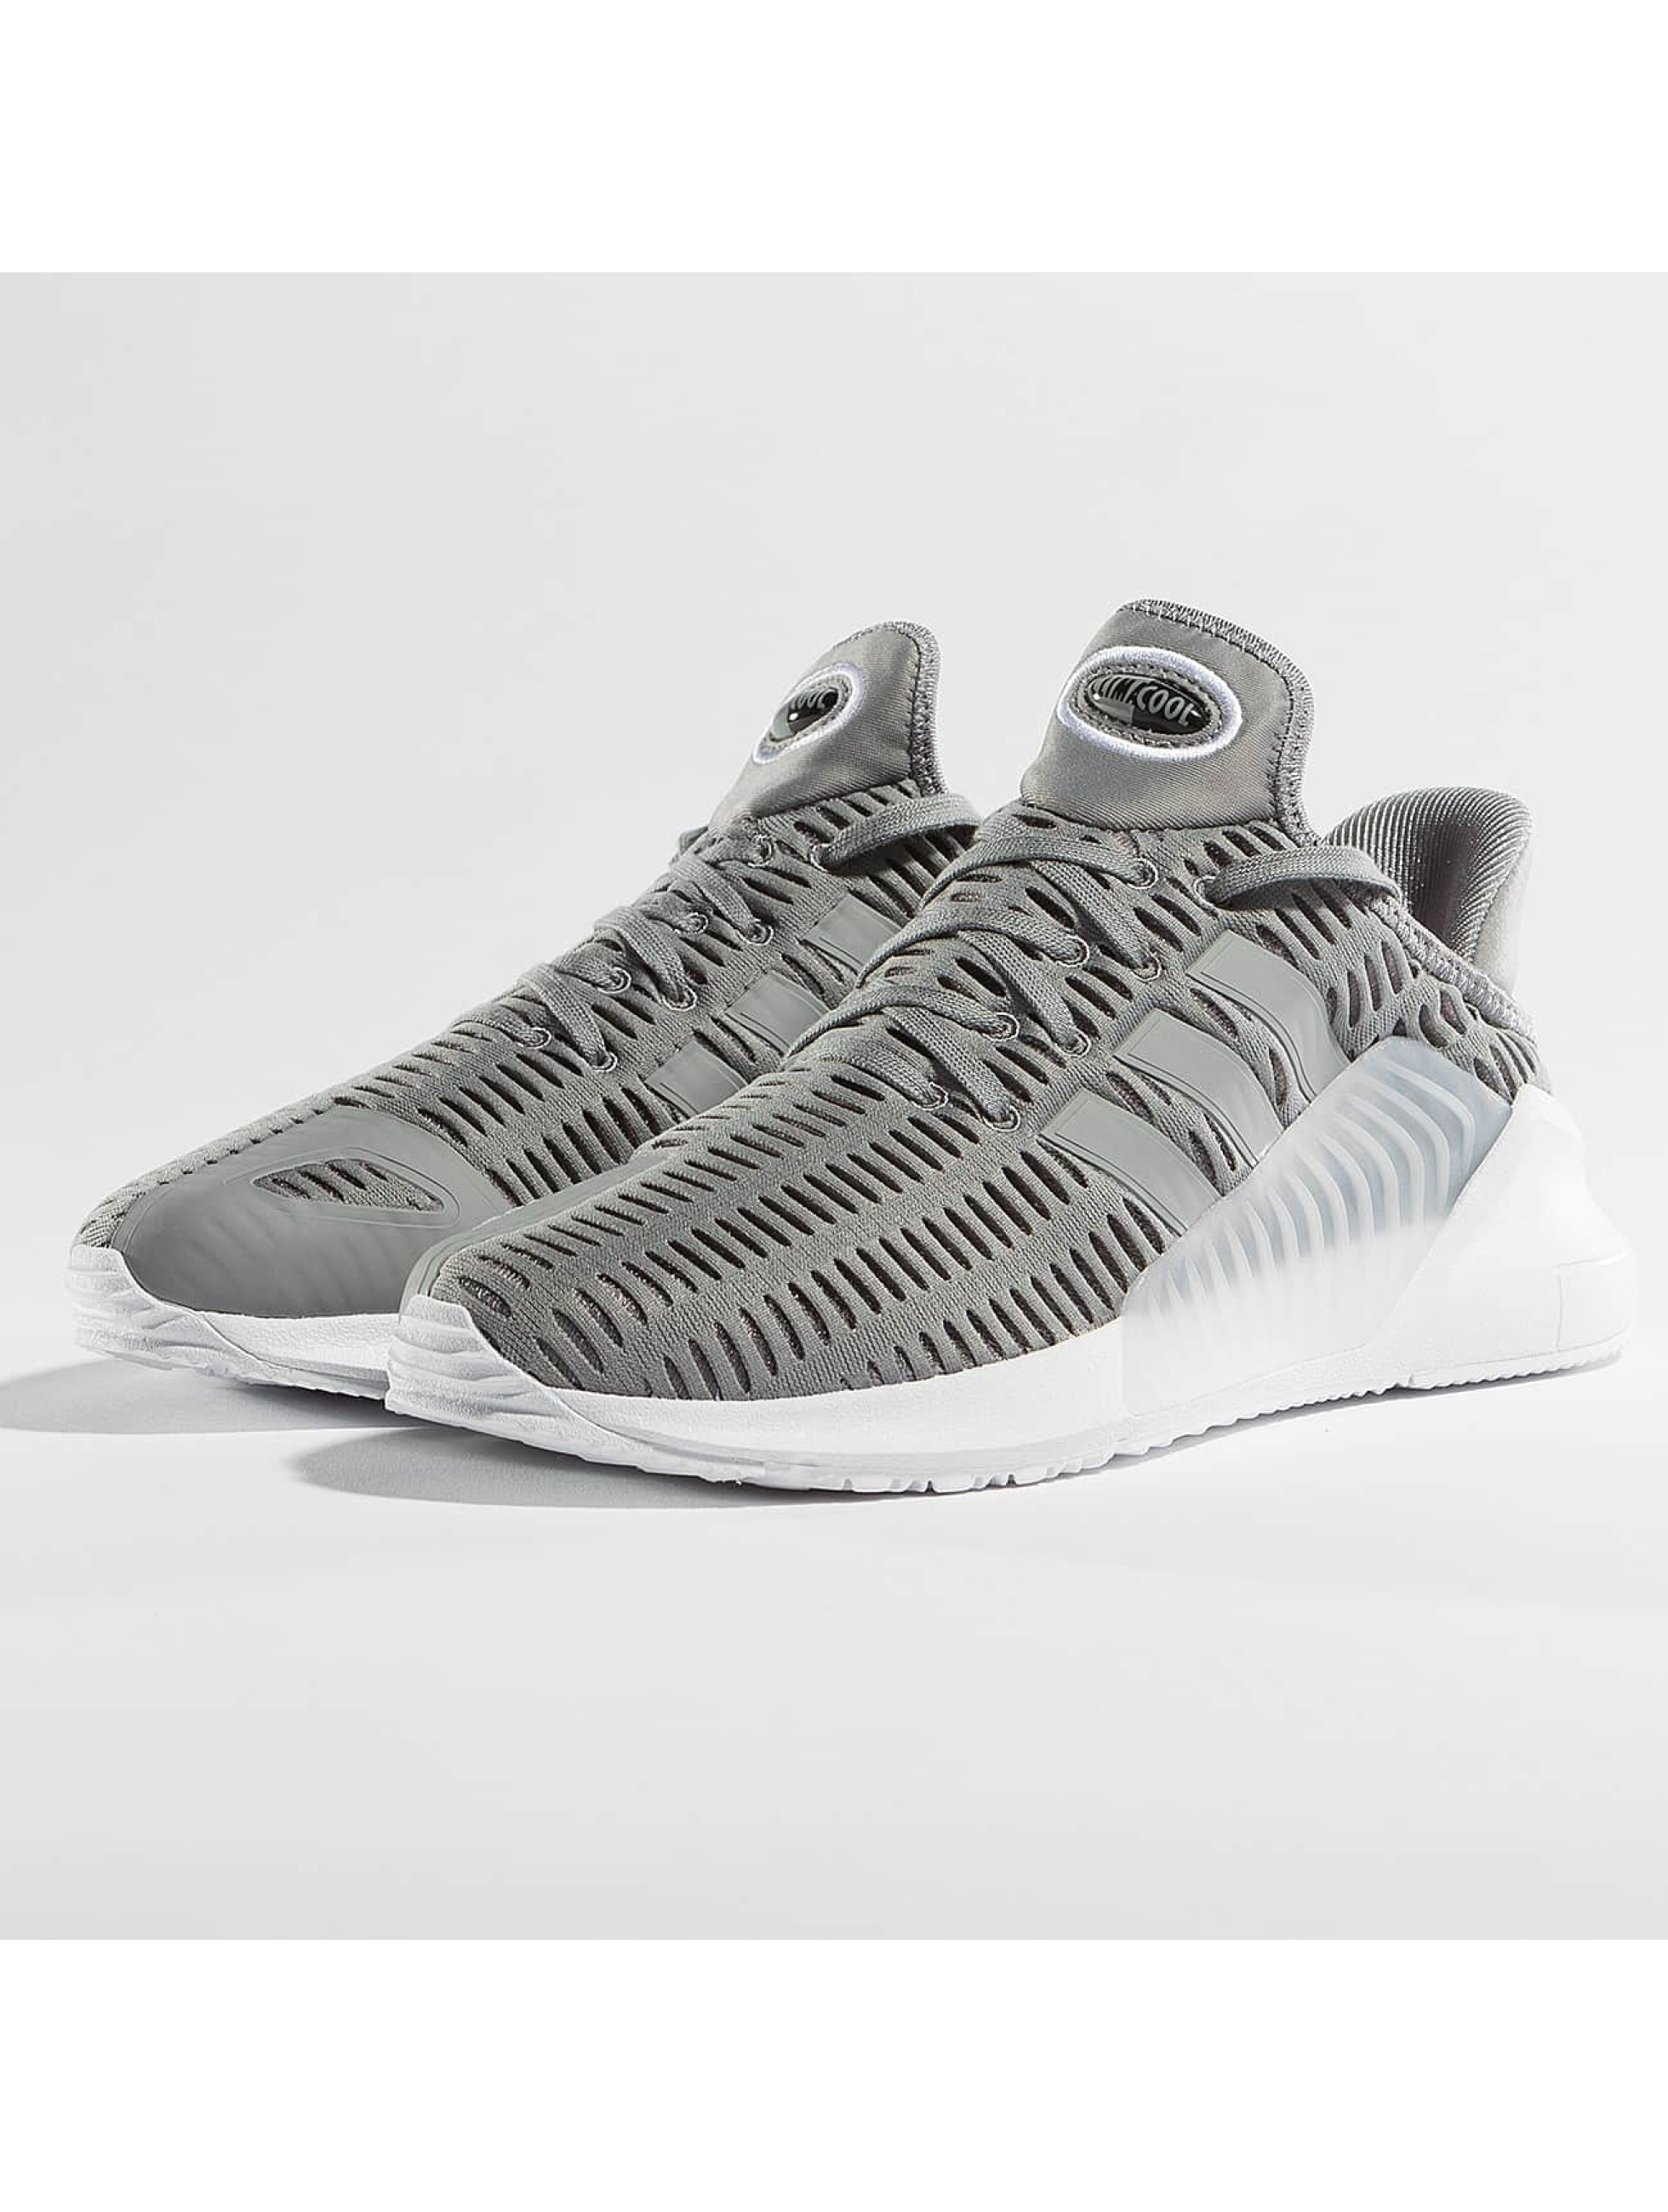 adidas Sneakers Climacool 02/17 gray